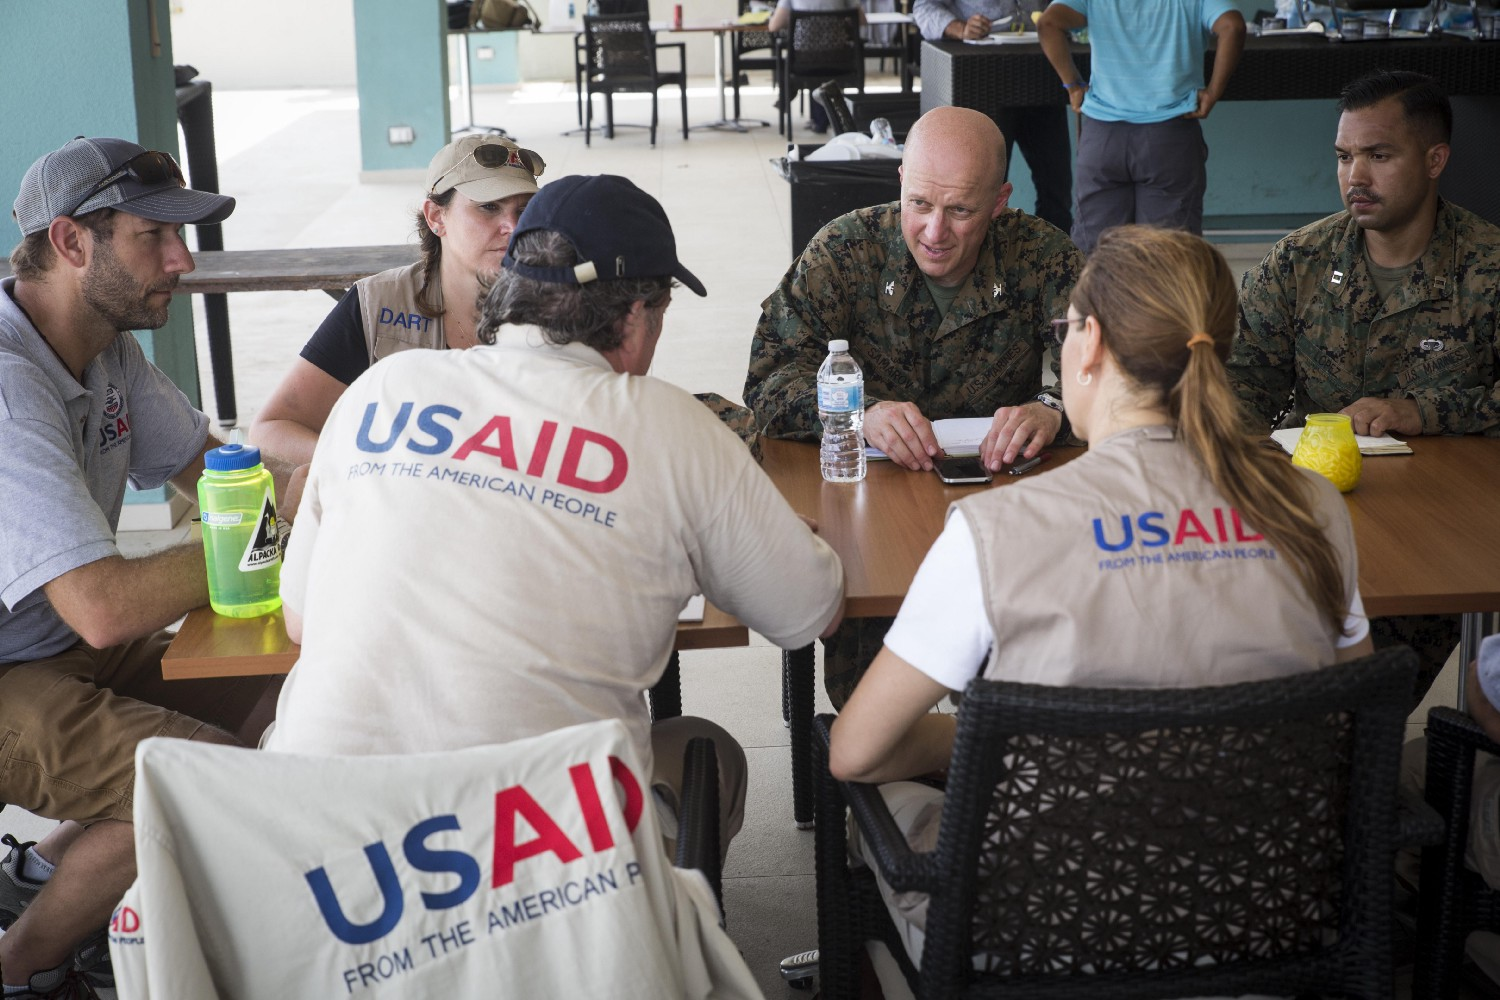 USAID's DART and JTF-LI discuss response plans for Saint Martin on Sept. 13, 2017. Photo Credit: Sgt. Ian Leones, U.S. Marine Corps